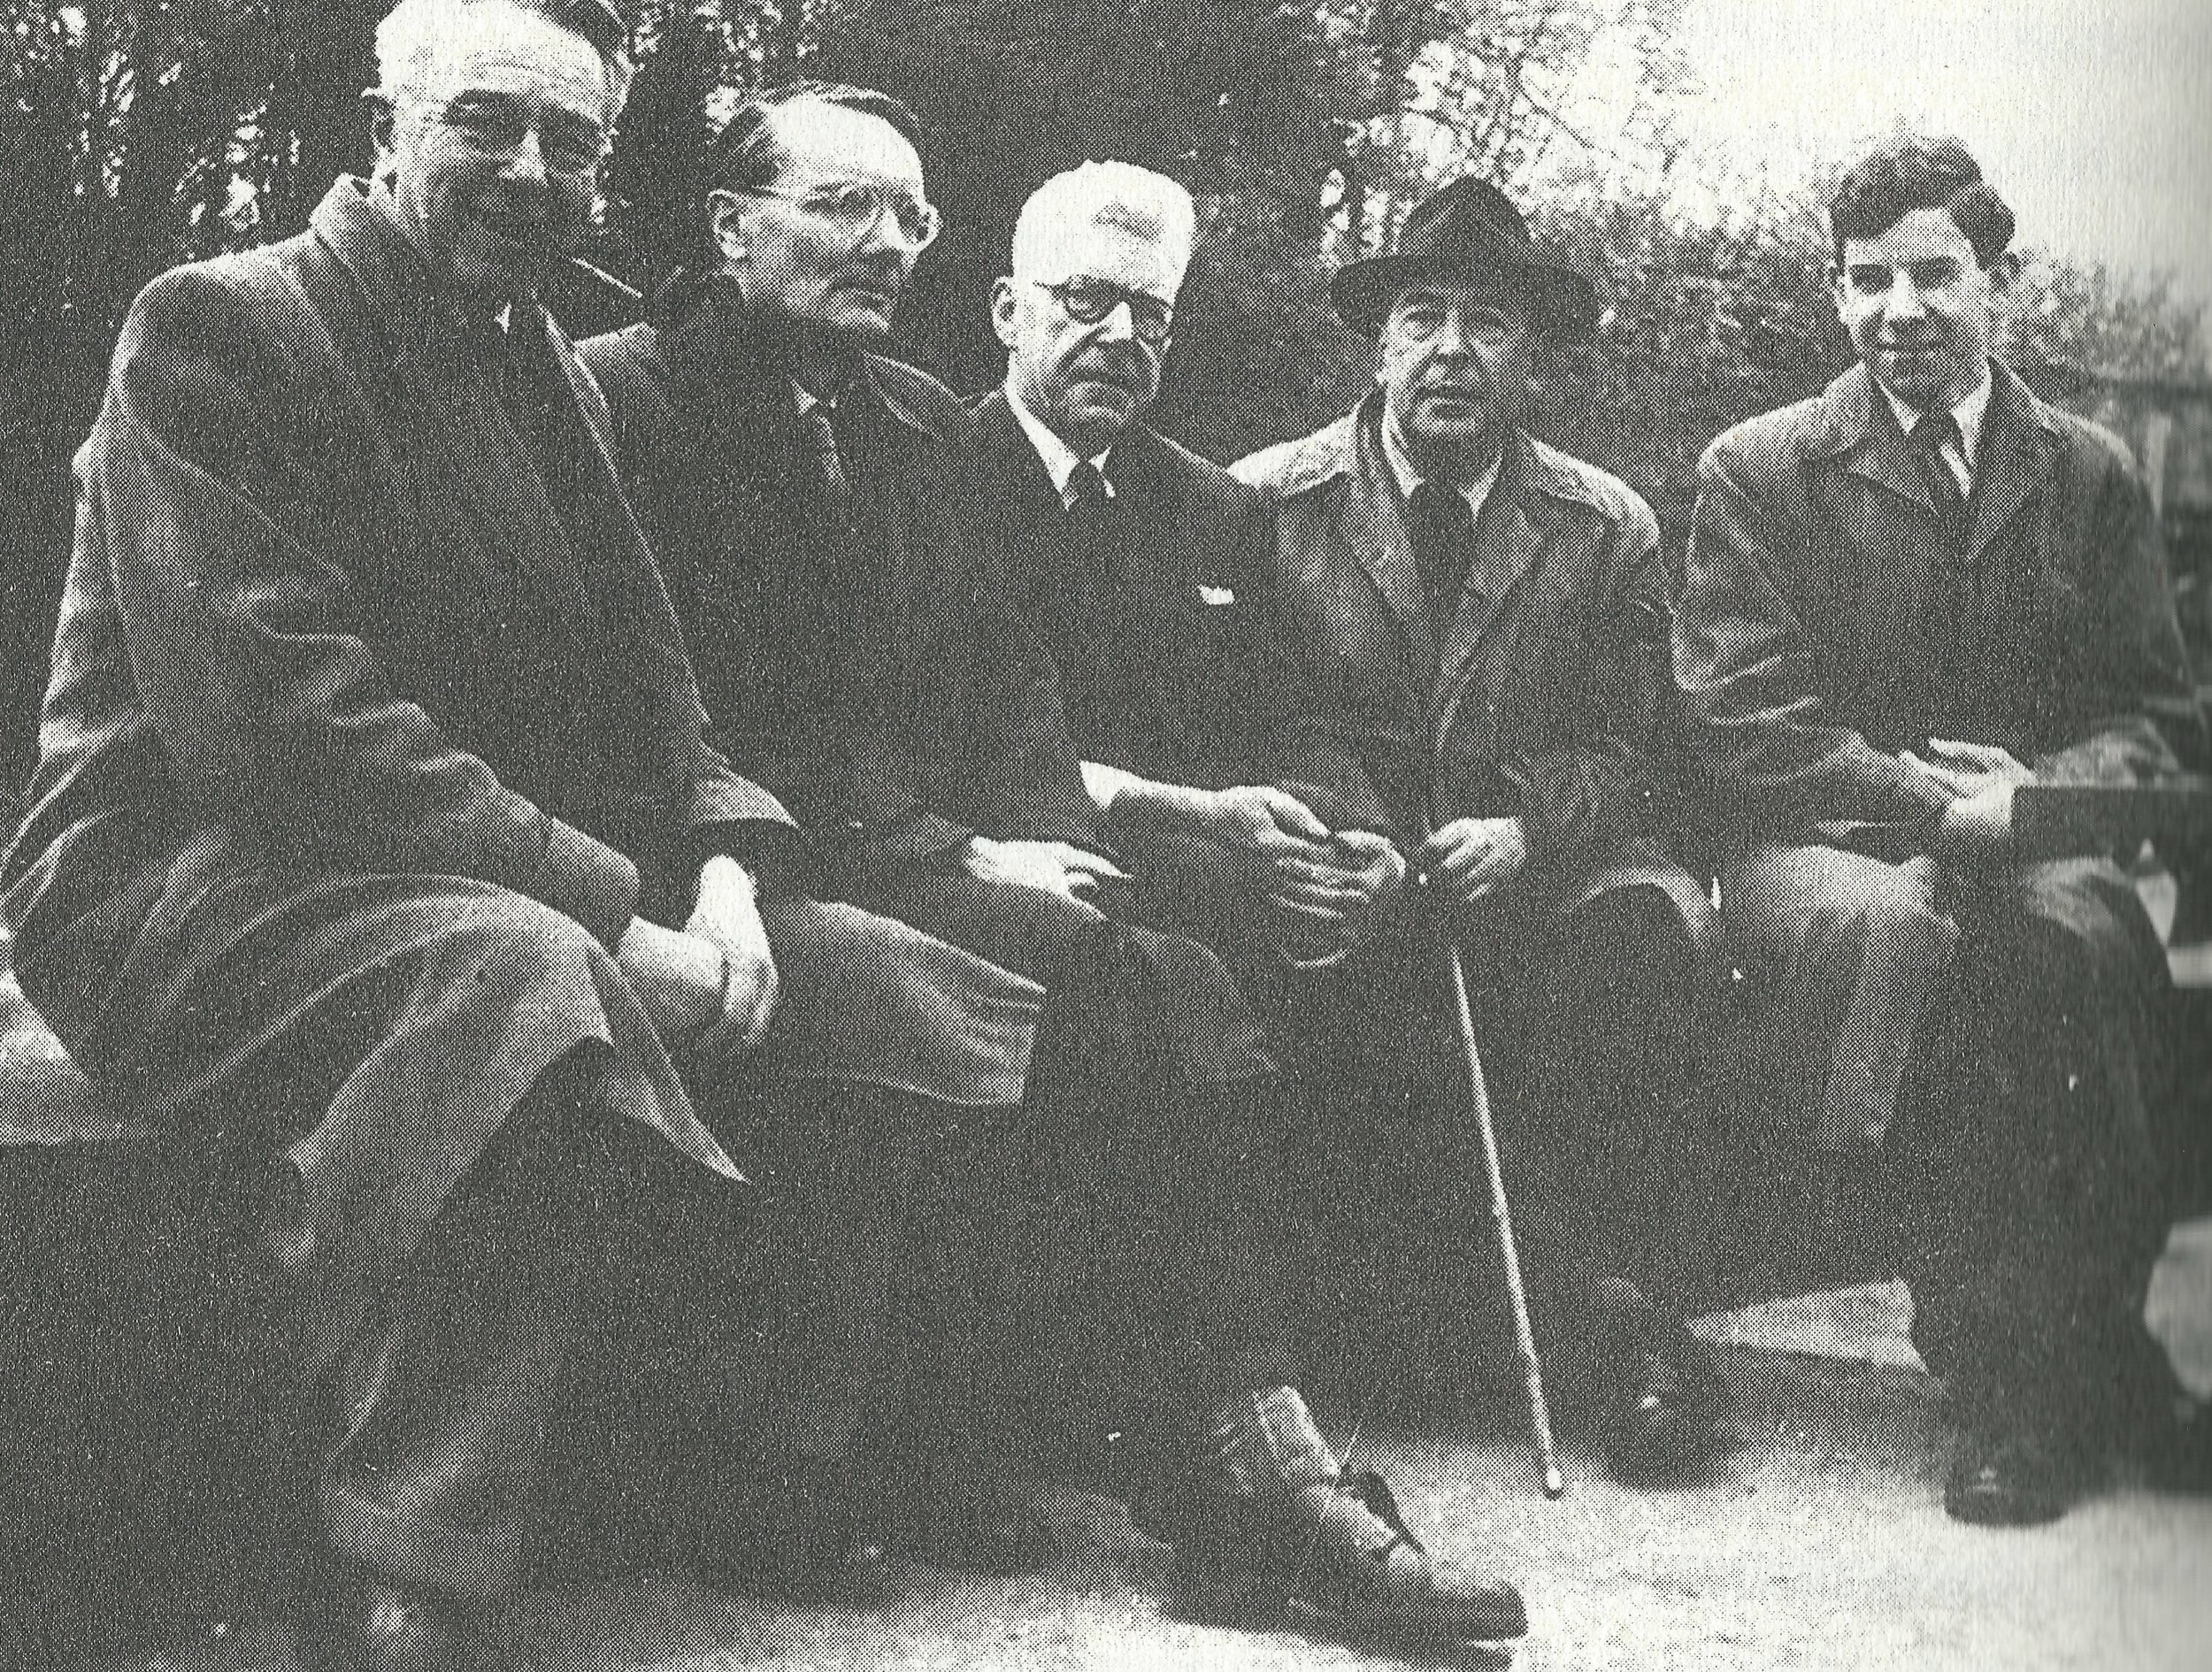 C.S. Lewis, fourth from the left. Photo taken at The Trout, just outside the Port Meadow in Oxford.